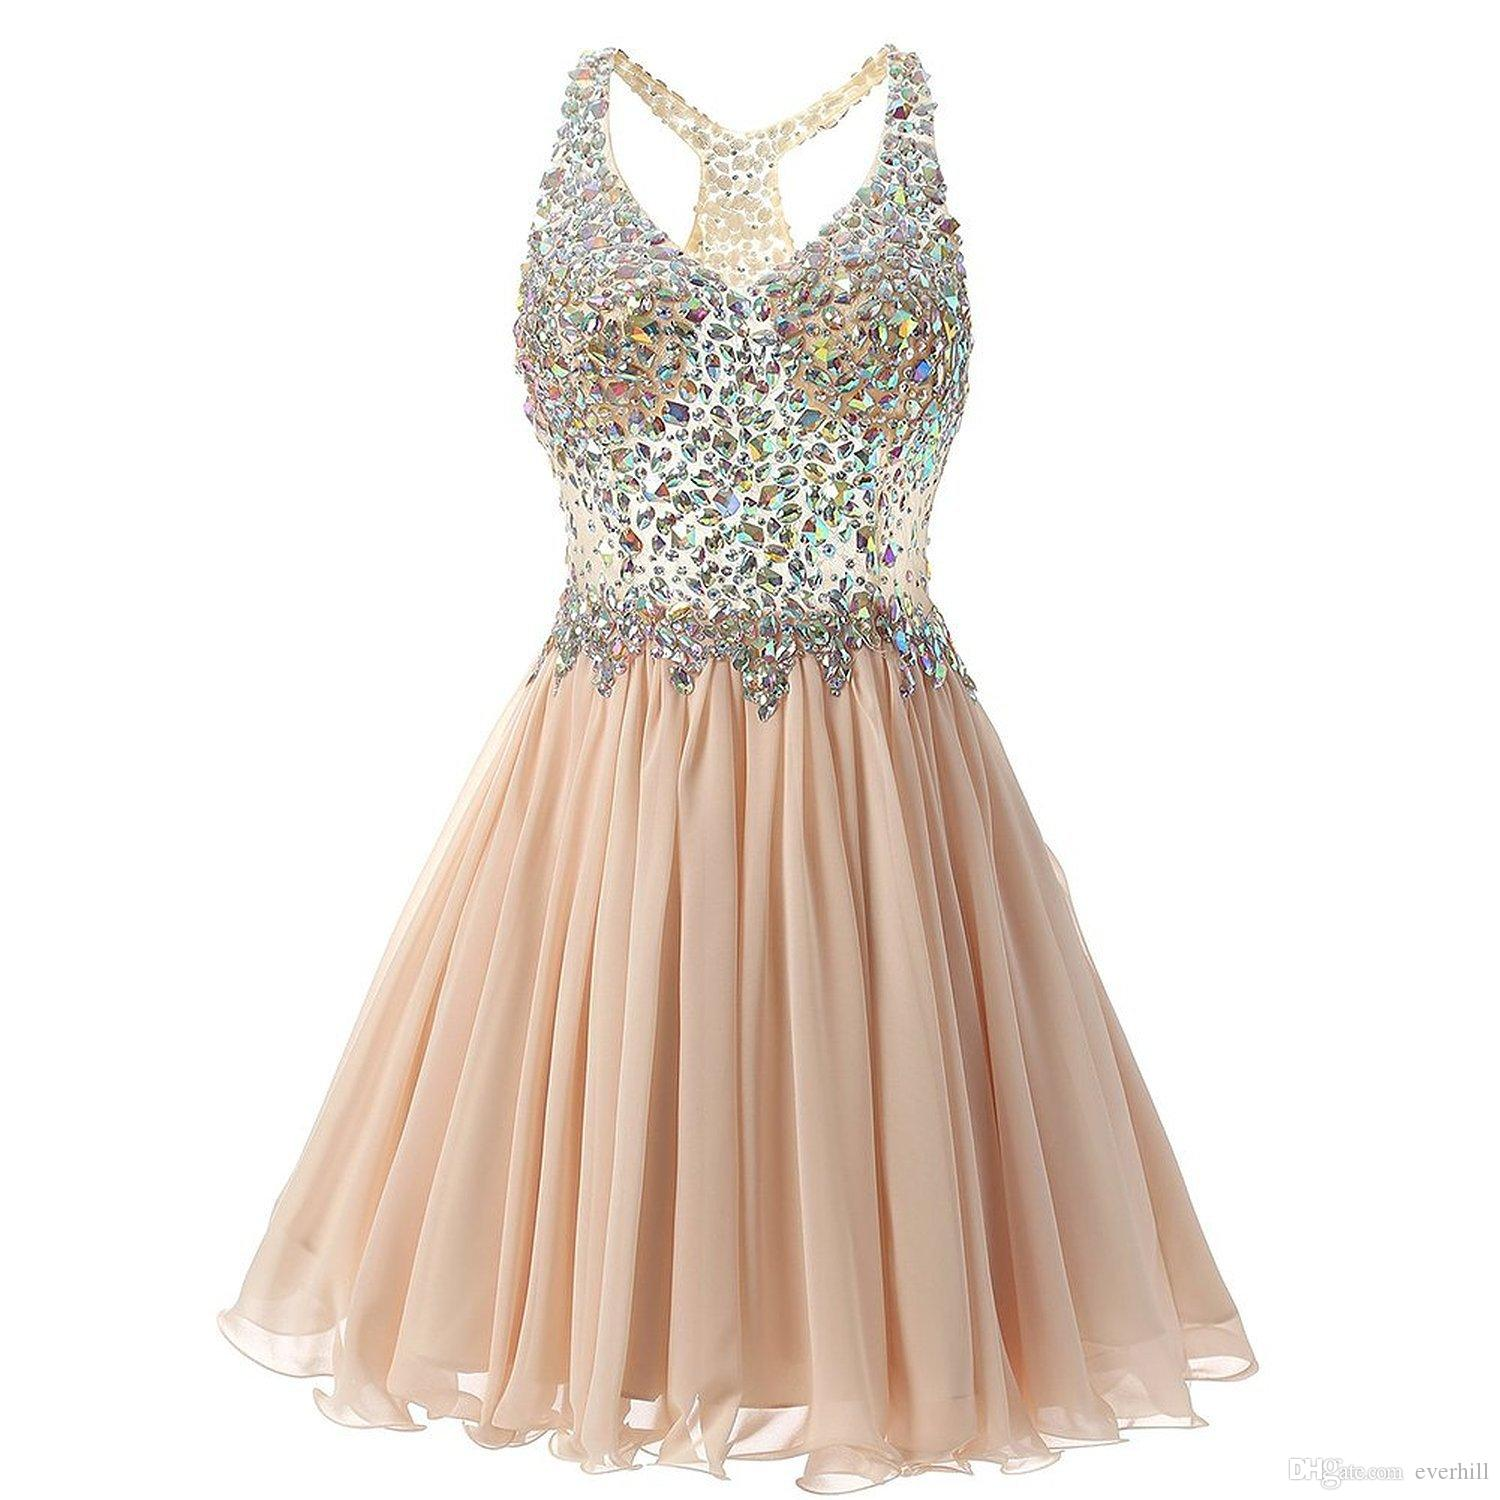 Sexy Girls Prom Dresses 2018 Short Beaded Crystal Luxury V Neck Sleeveless  Chiffon Teens Formal Party Gowns Homecoming Dresses A Line Prom Dress Shops  Prom ... 7ef93fa636c3